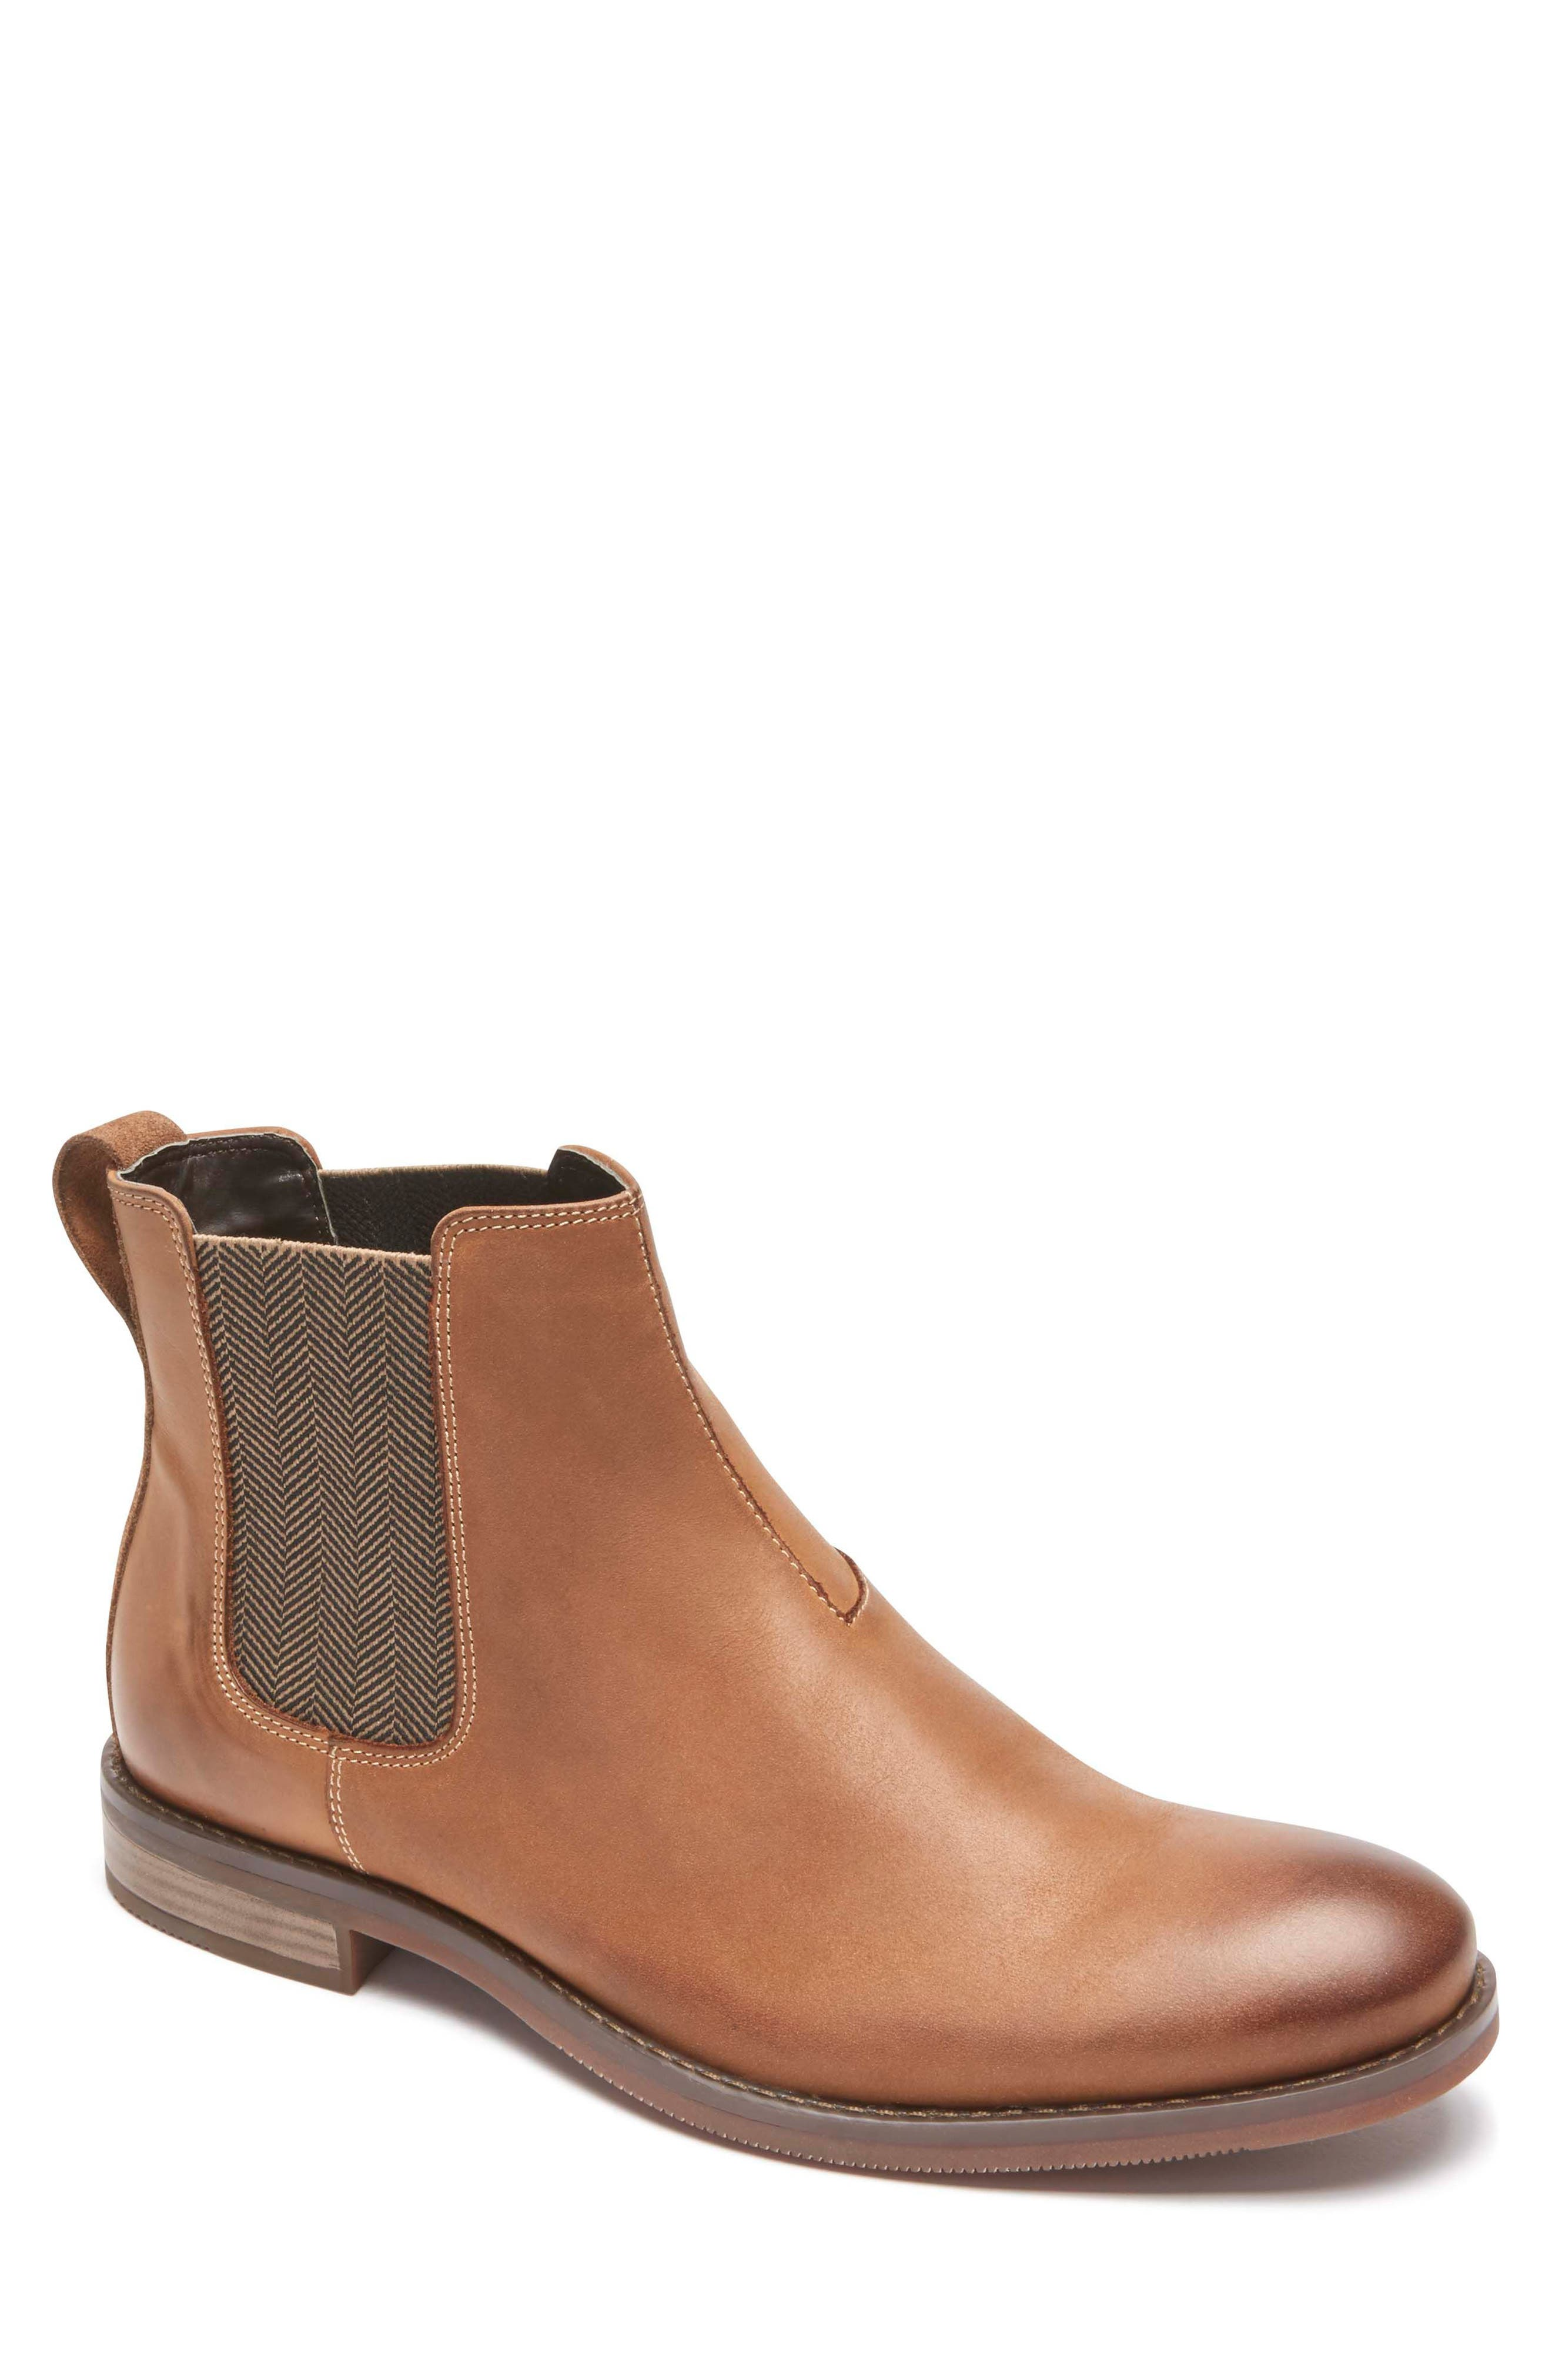 Wynstin Chelsea Boot,                             Main thumbnail 2, color,